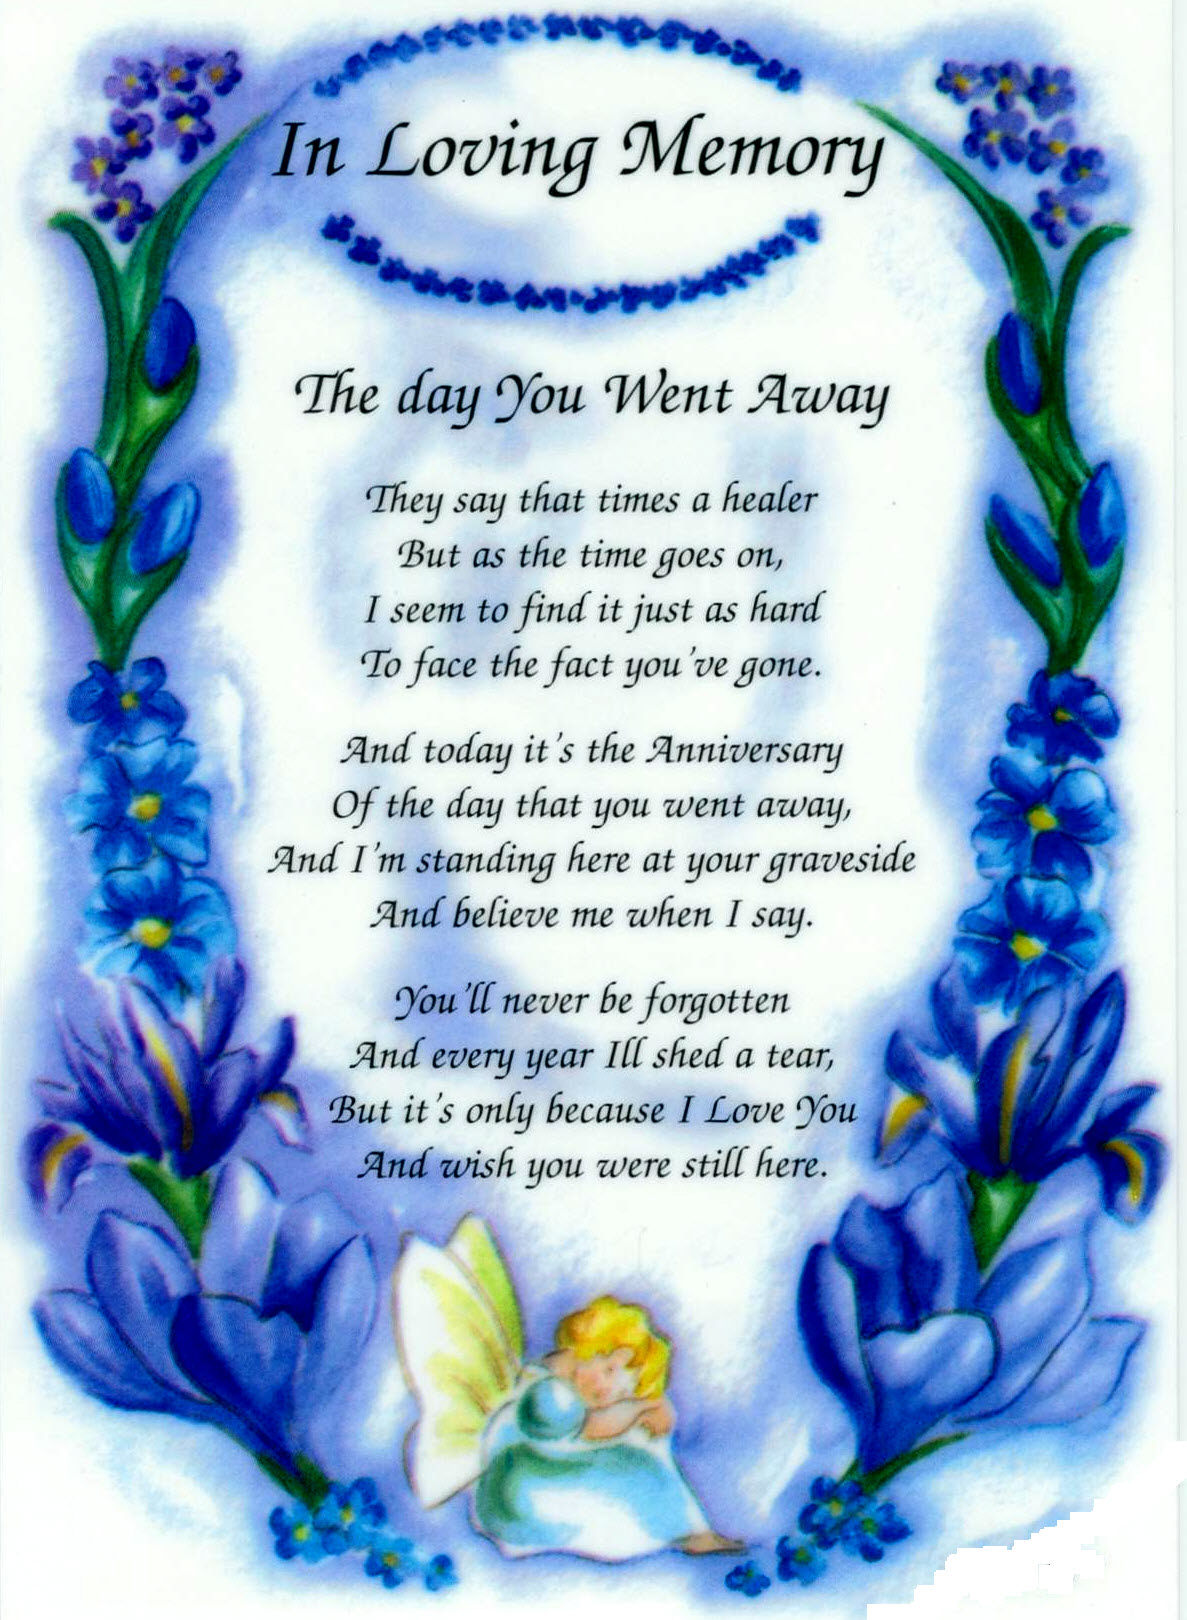 Wedding Anniversary After Death Of Spouse Quotes : wedding, anniversary, after, death, spouse, quotes, Quotes, About, Death, Anniversary, Quotes)